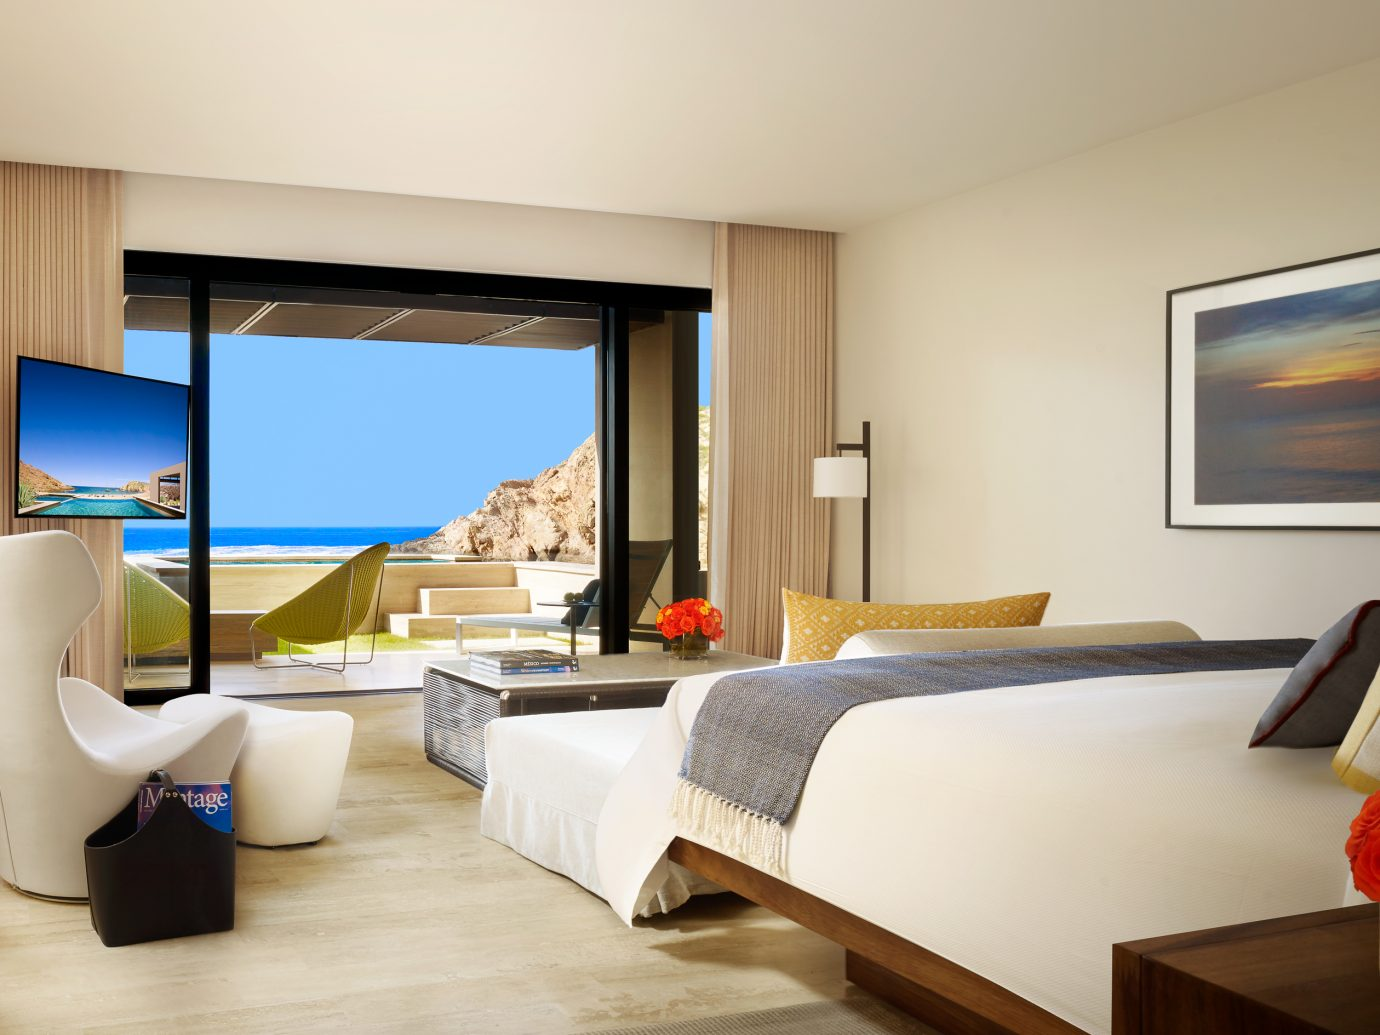 Bedroom at Montage Los Cabos